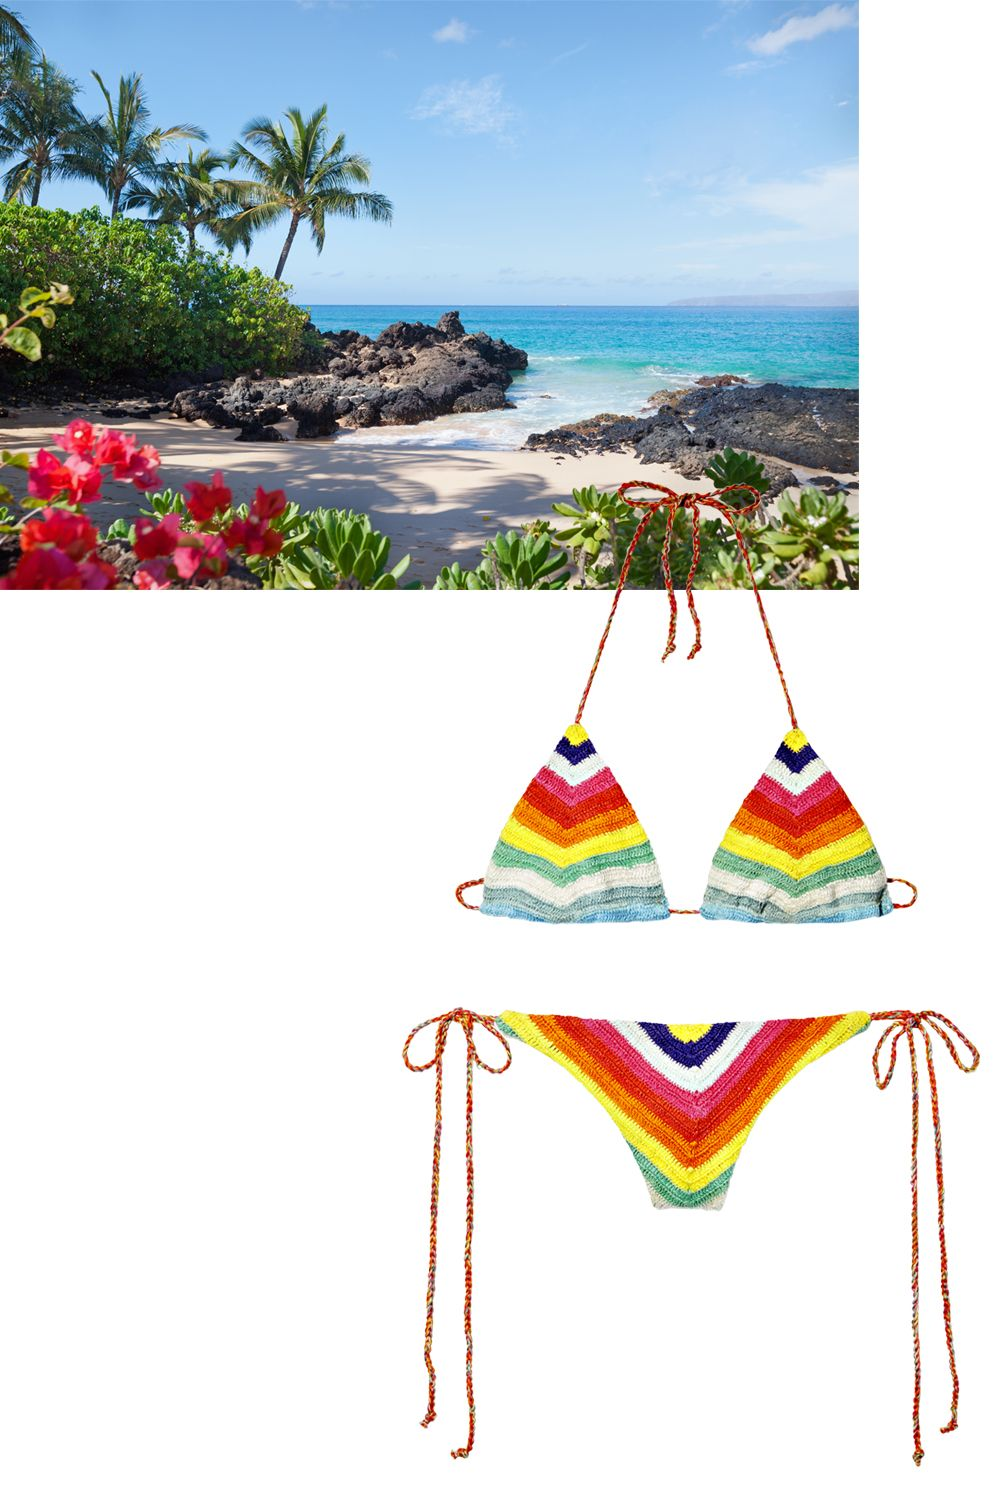 "<p><strong>Ideal vacation: </strong>Maui, by car or by helicopter.</p><p><strong>Workout routine: </strong>A combination of stretching, strength-training, and cardio.</p><p><strong><em>Mara Hoffman </em></strong><em> bikini top, $90, and bottom, $170,  <a href=""http://www.marahoffman.com/"">marahoffman.com</a></em><span class=""redactor-invisible-space""><em>&#x3B; Maui</em></span><br></p>"